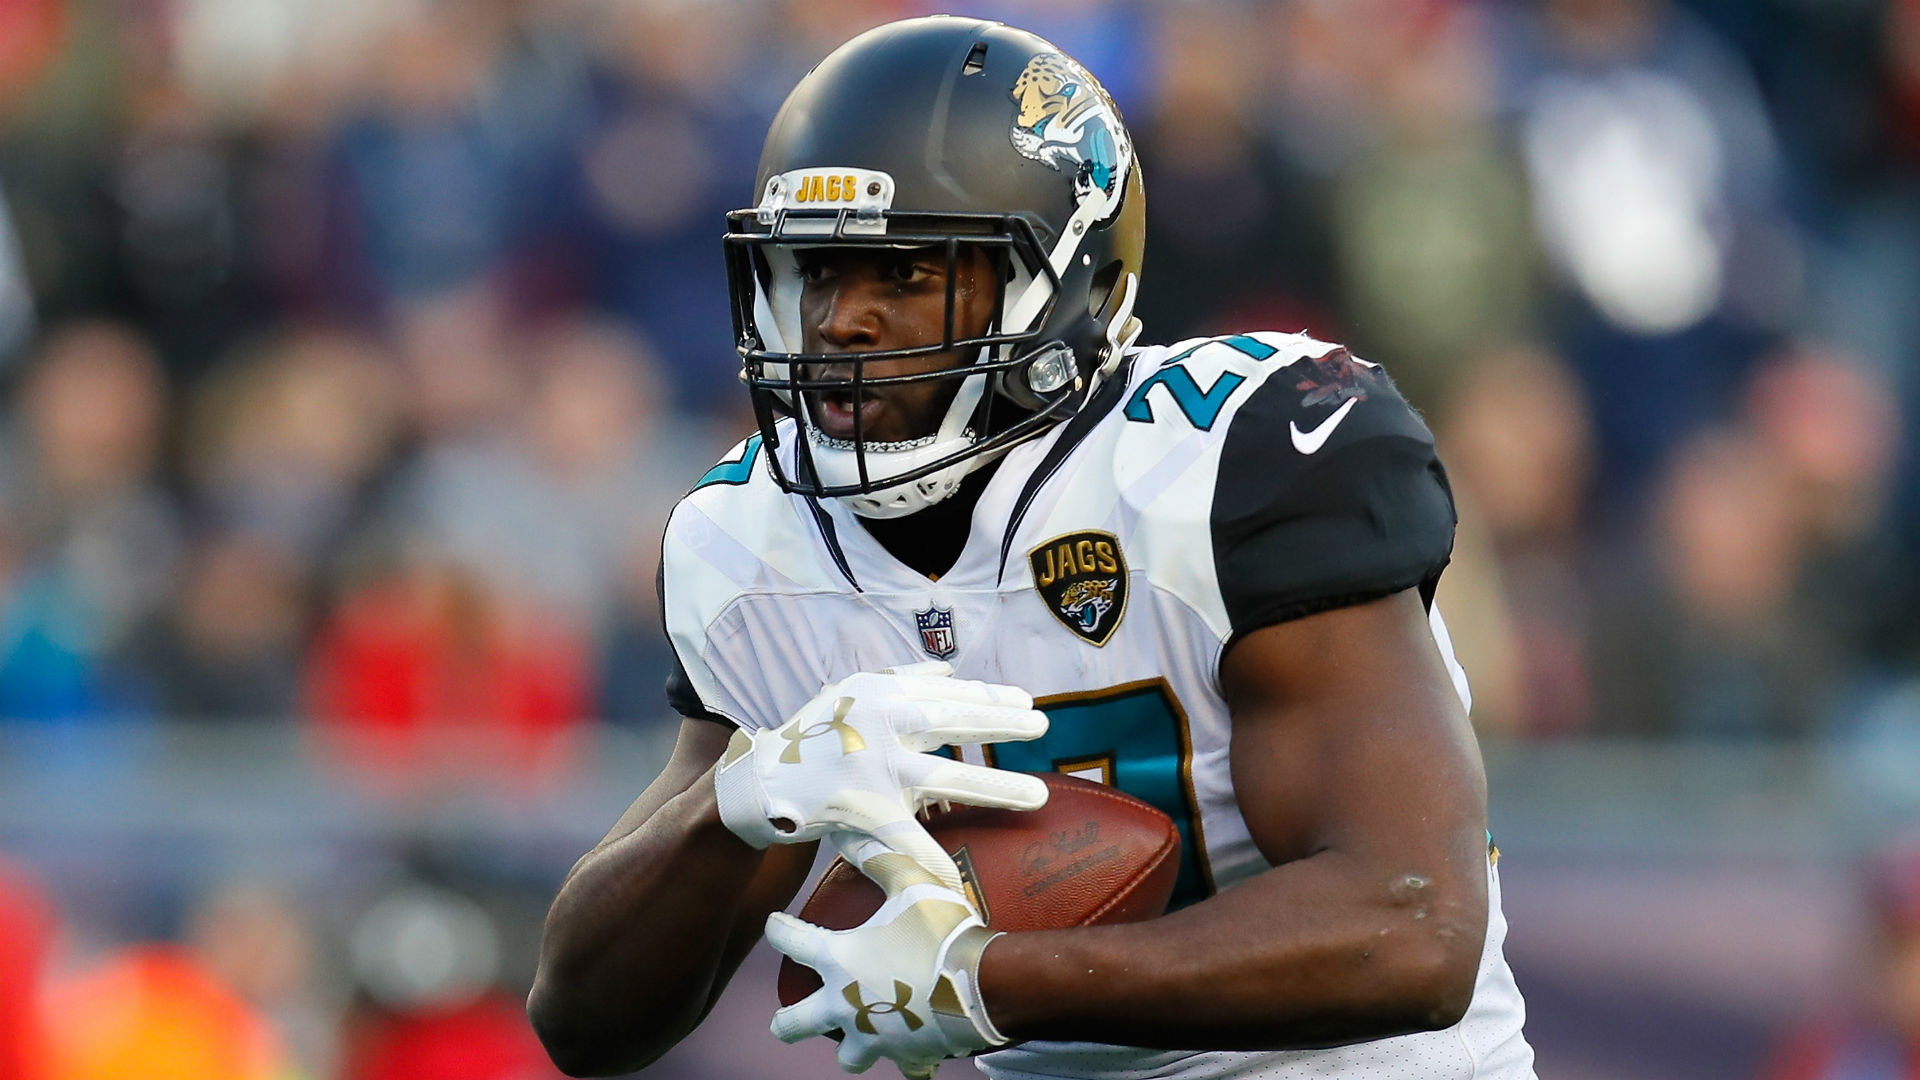 Leonard Fournette injury update: Jaguars RB won't play vs. Titans, report says